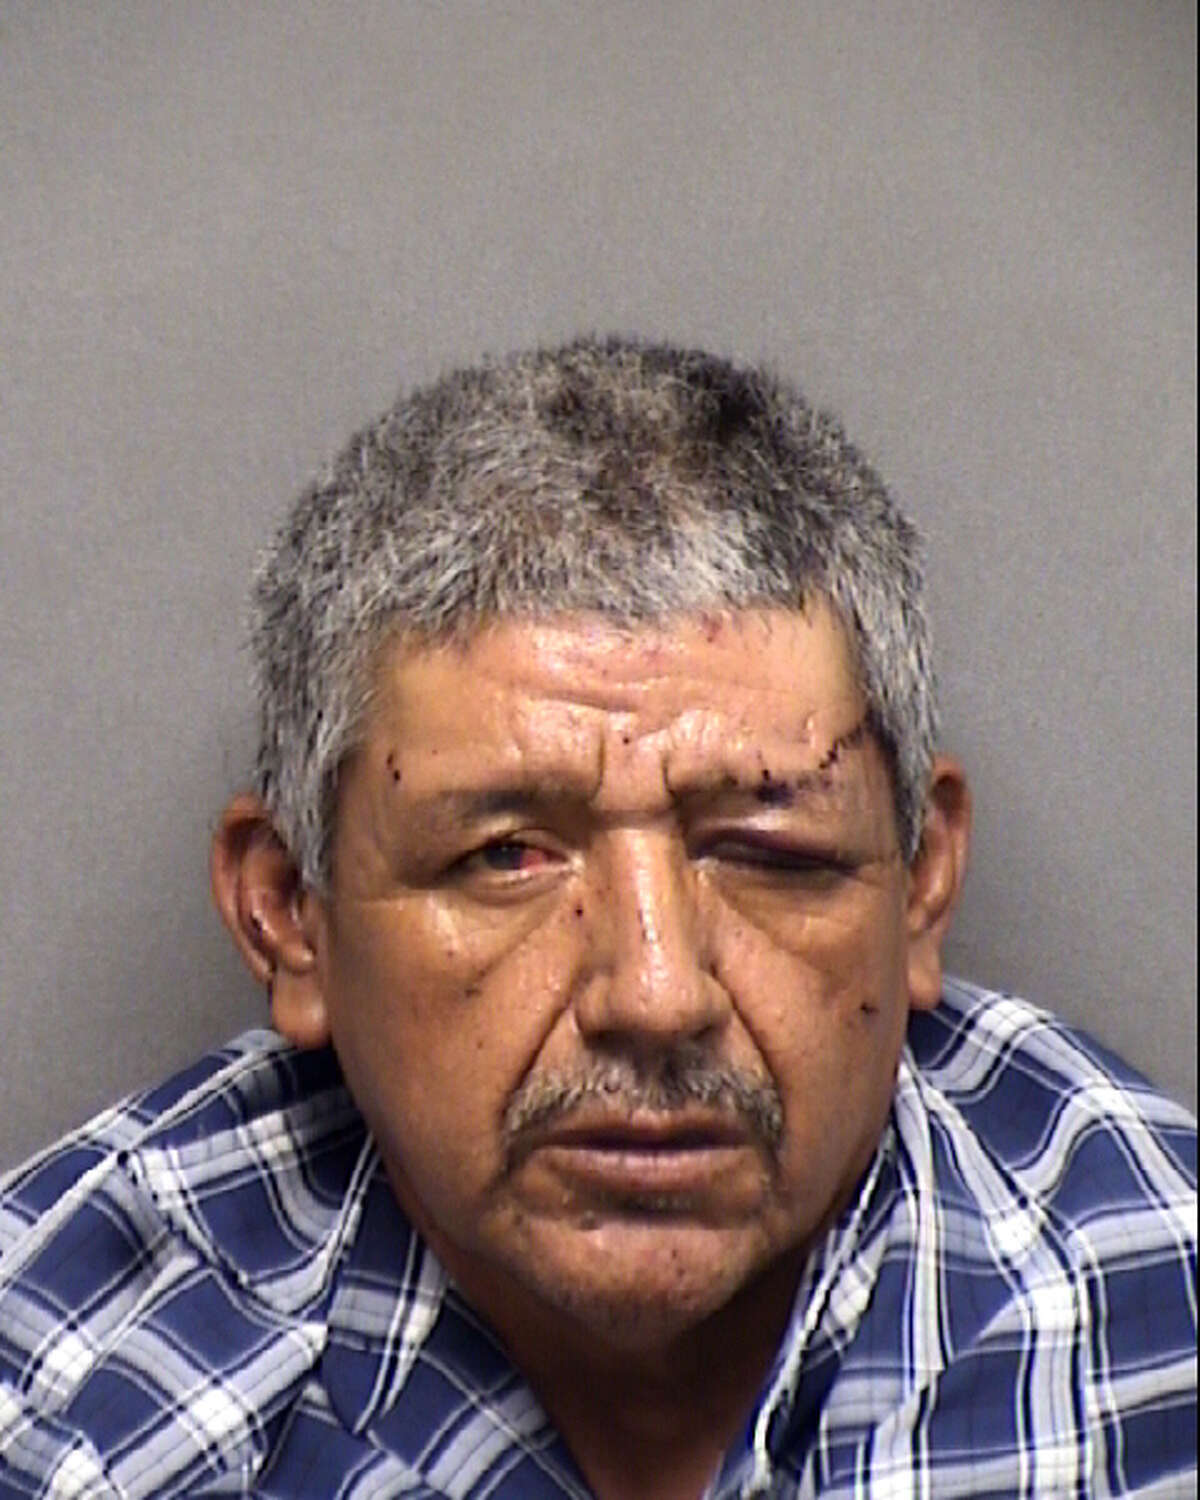 Gilberto Perez, 50, was charged with murder and aggravated assault with a deadly weapon.